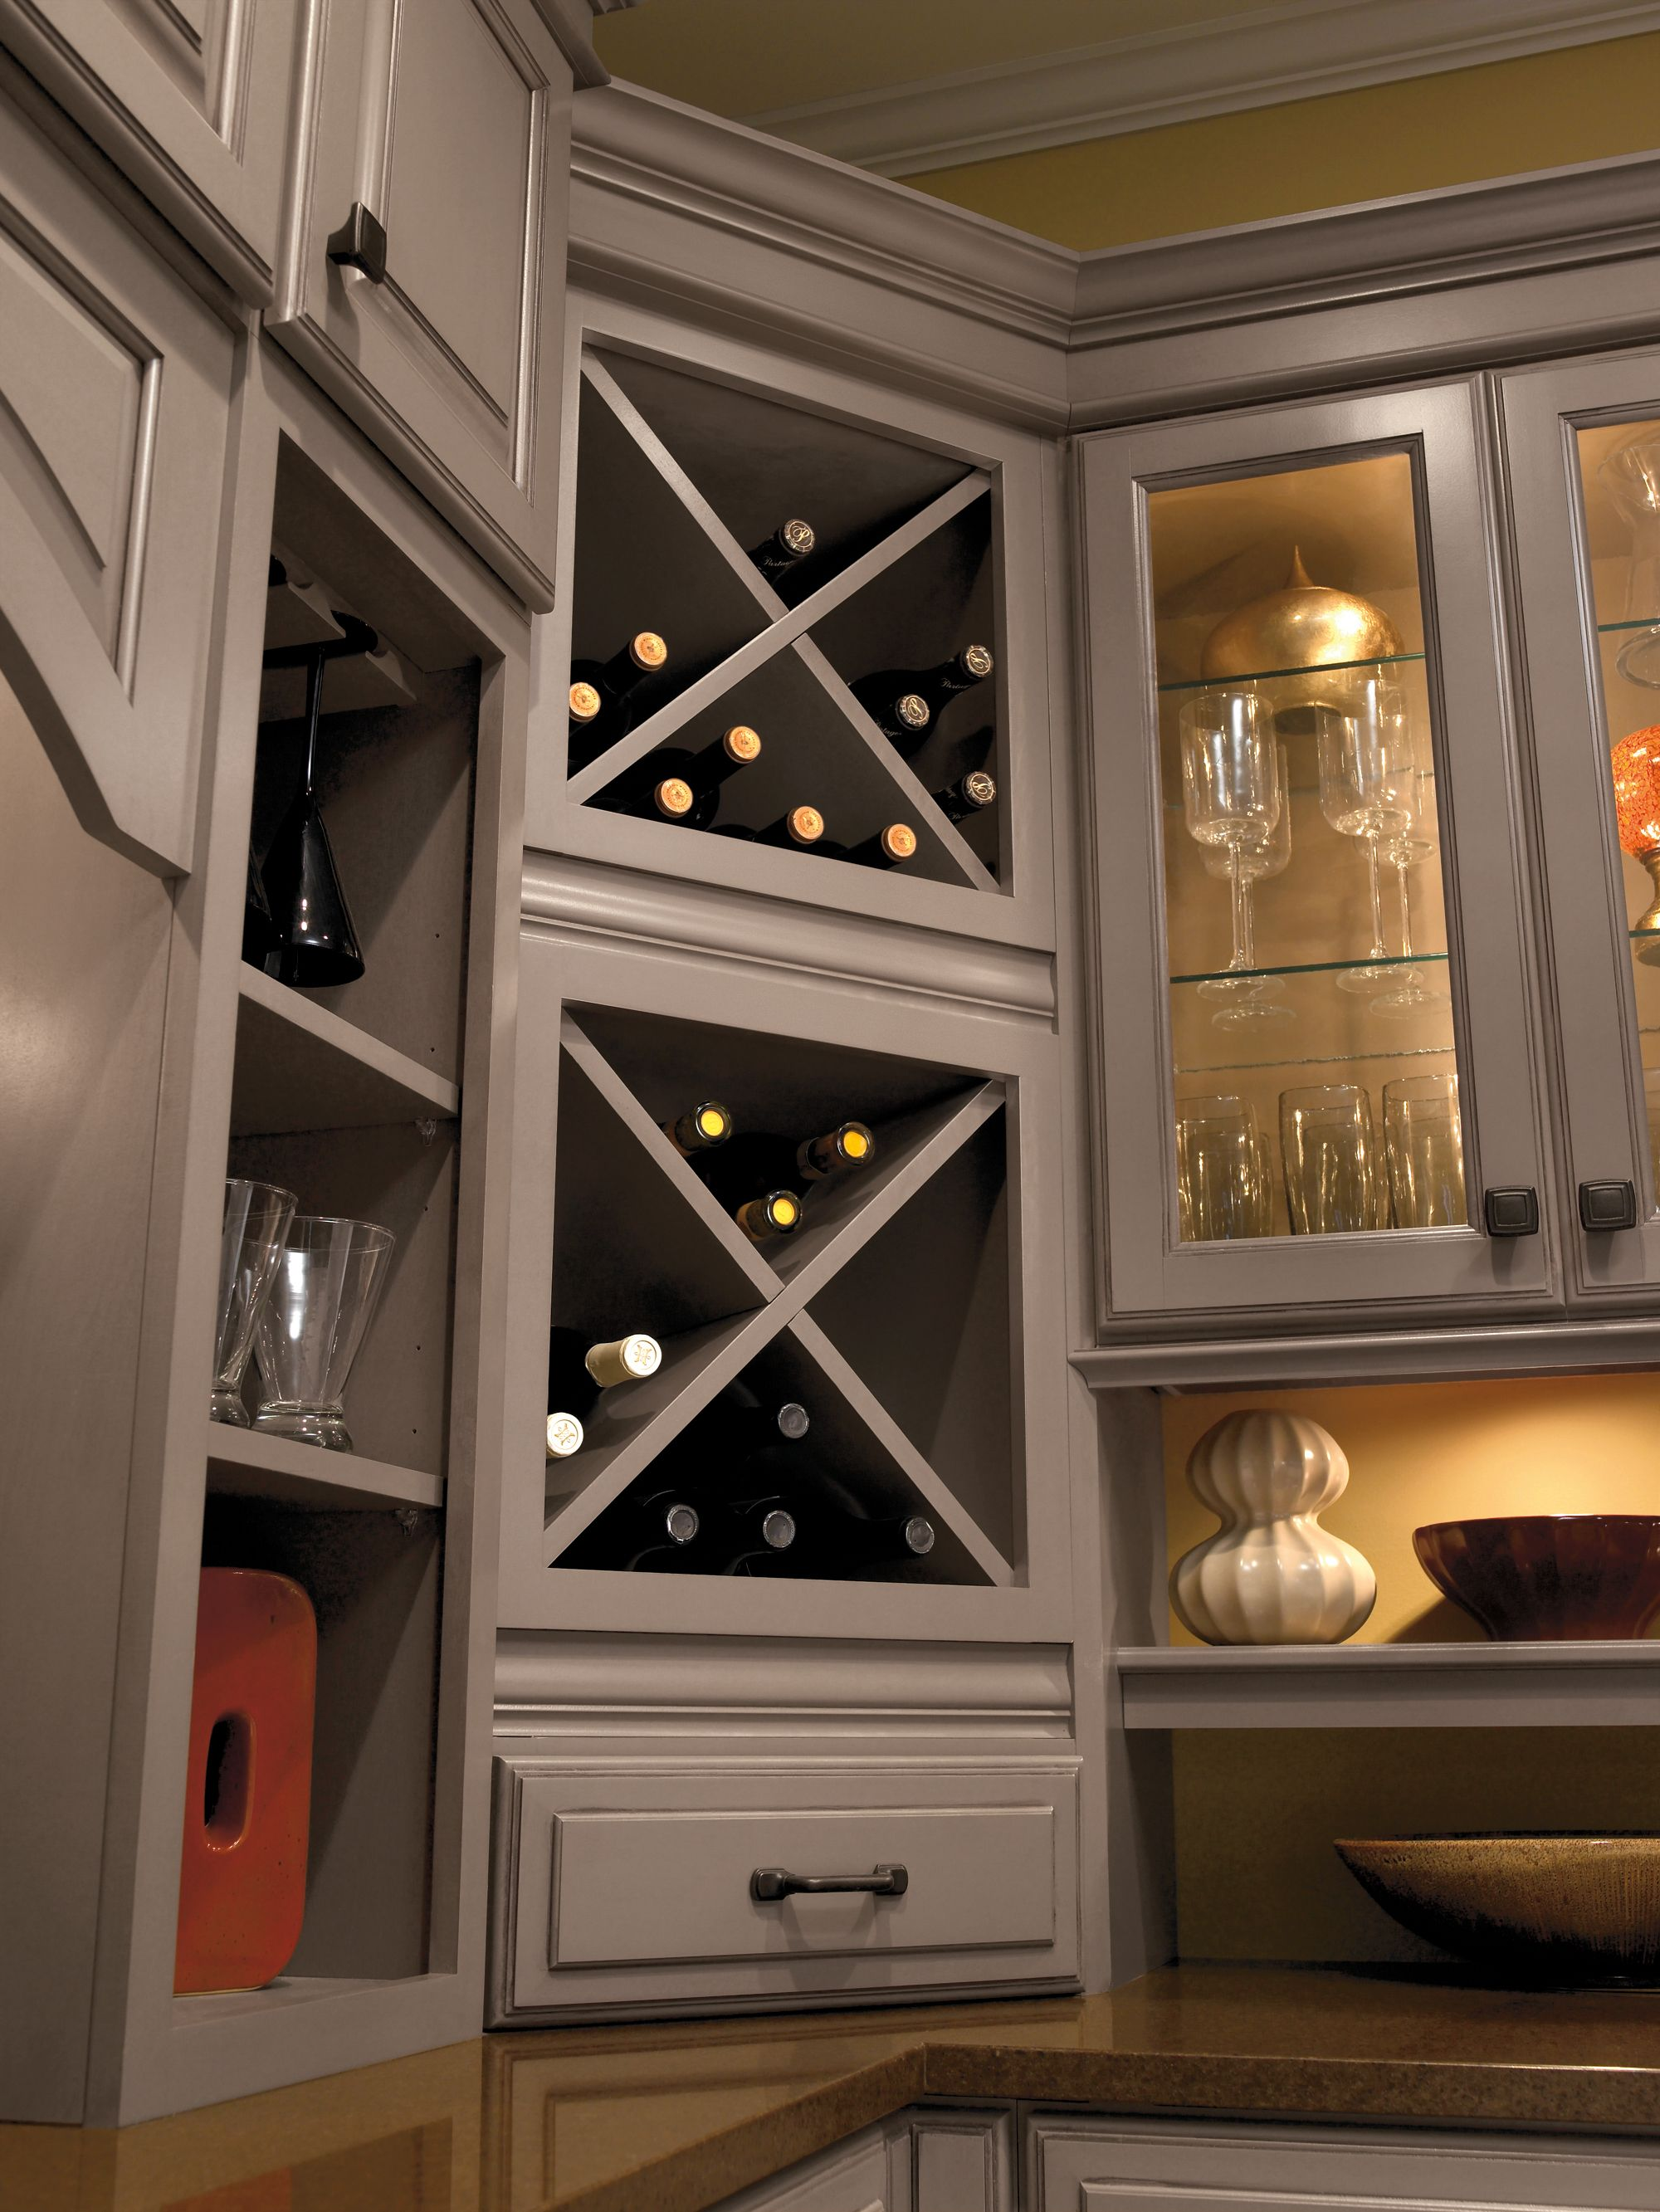 Built In Wine Rack Cabinet Storage Schrock Masterbrand Csikitchenandbath Kitchen Wine Rack Wine Storage Cabinets Kitchen Cabinet Wine Rack